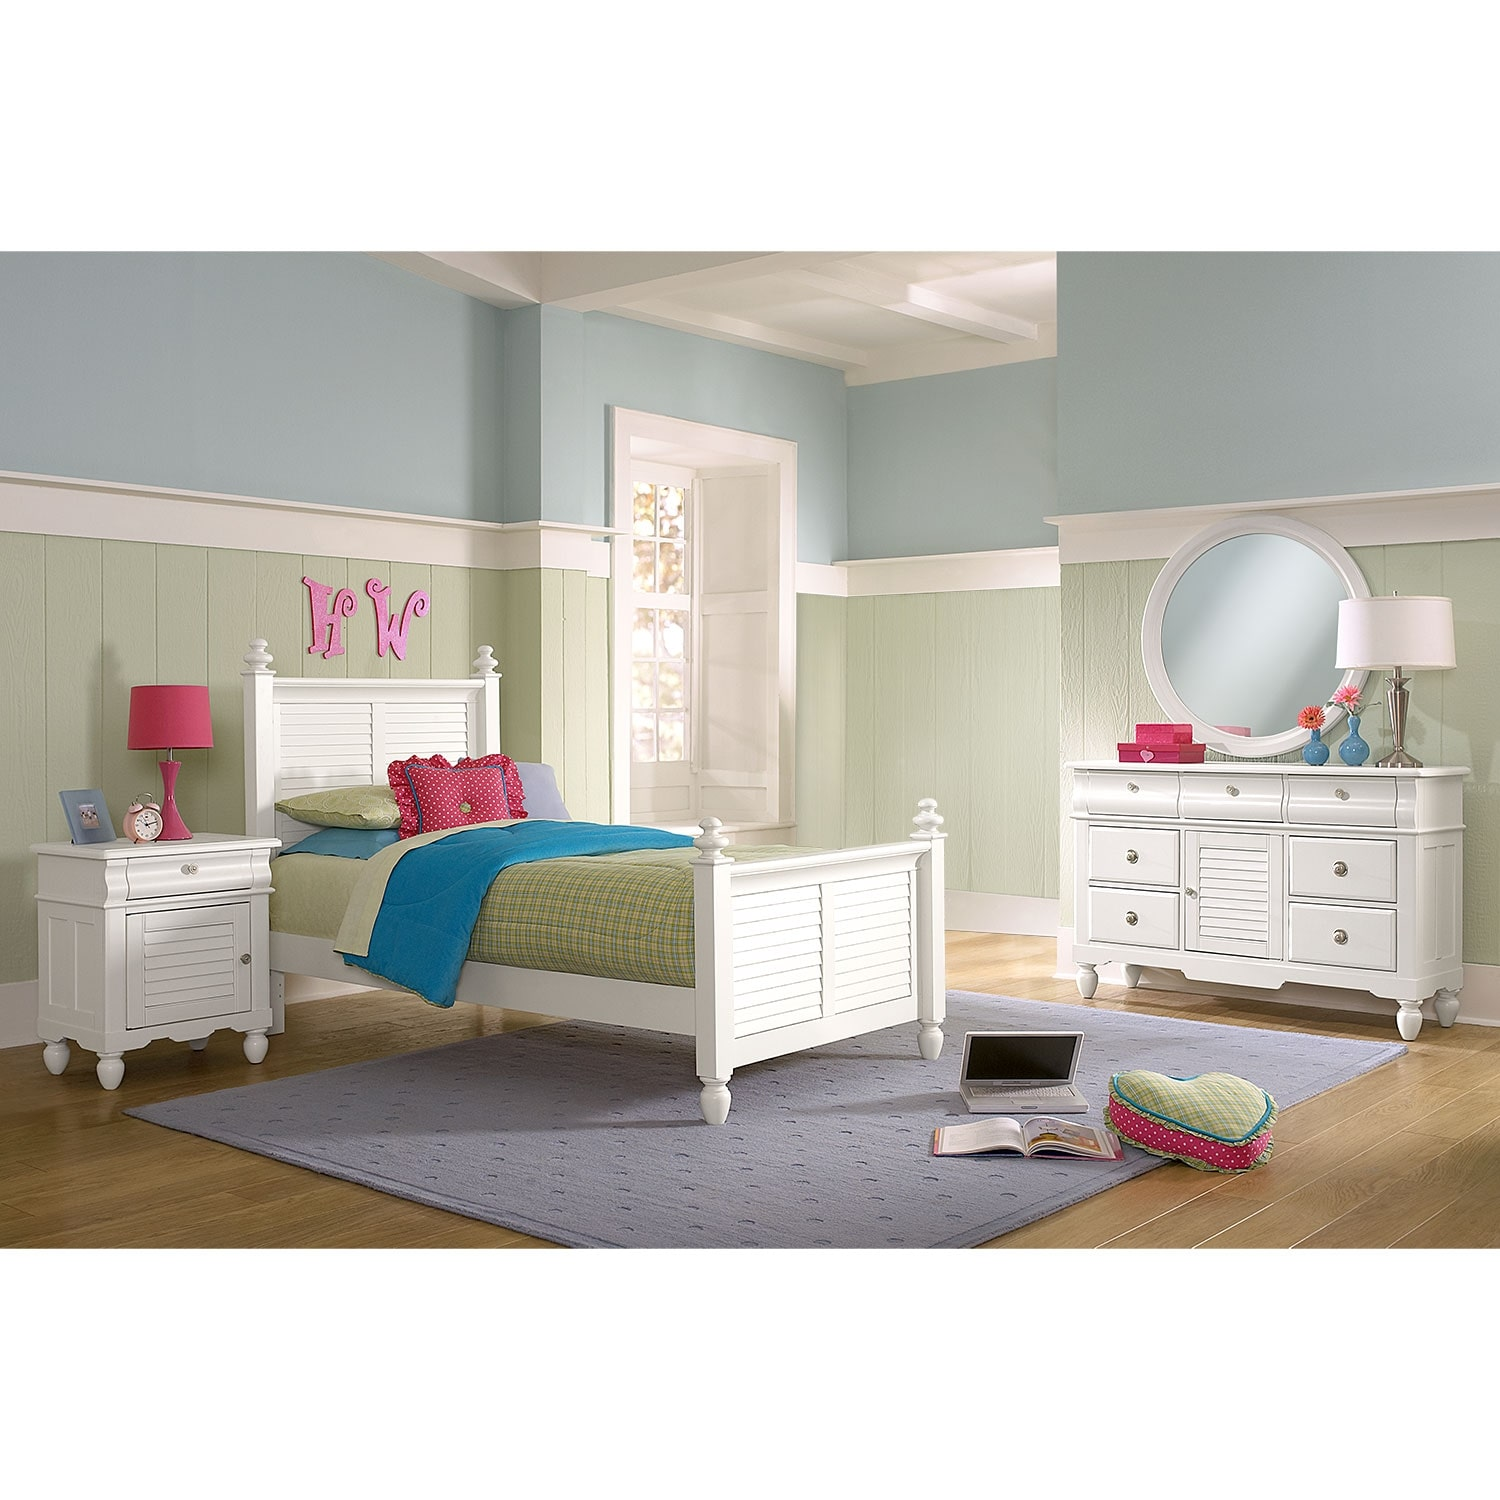 Seaside White 6 Pc. Full Bedroom